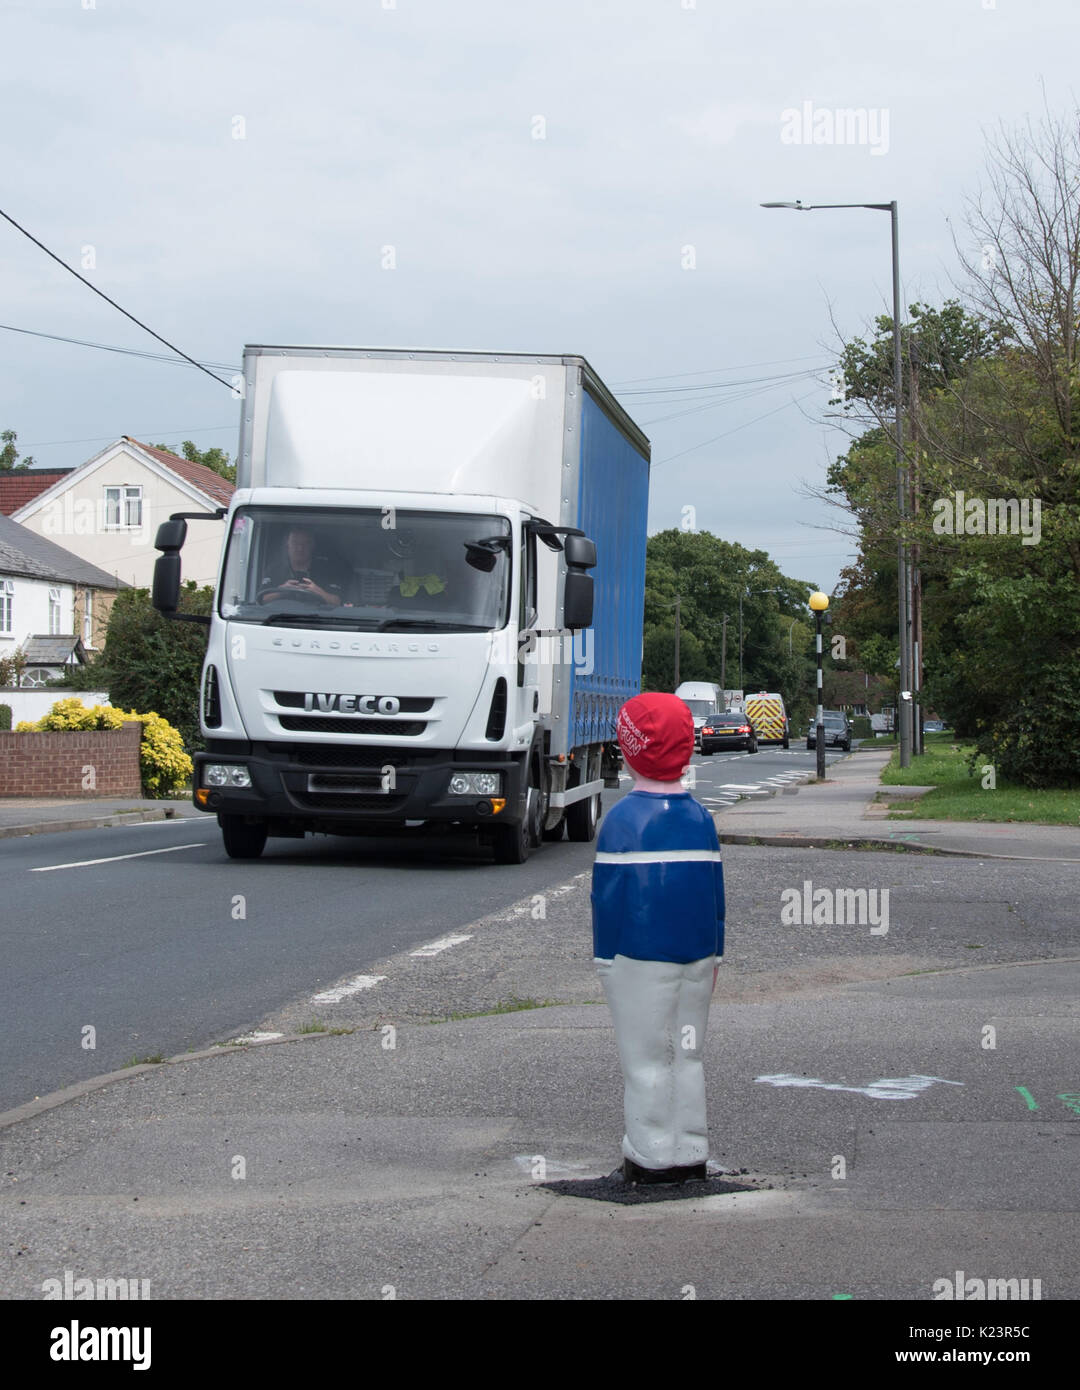 106a939ca1 texting at wheel of HGV outside Infants School - Stock Image